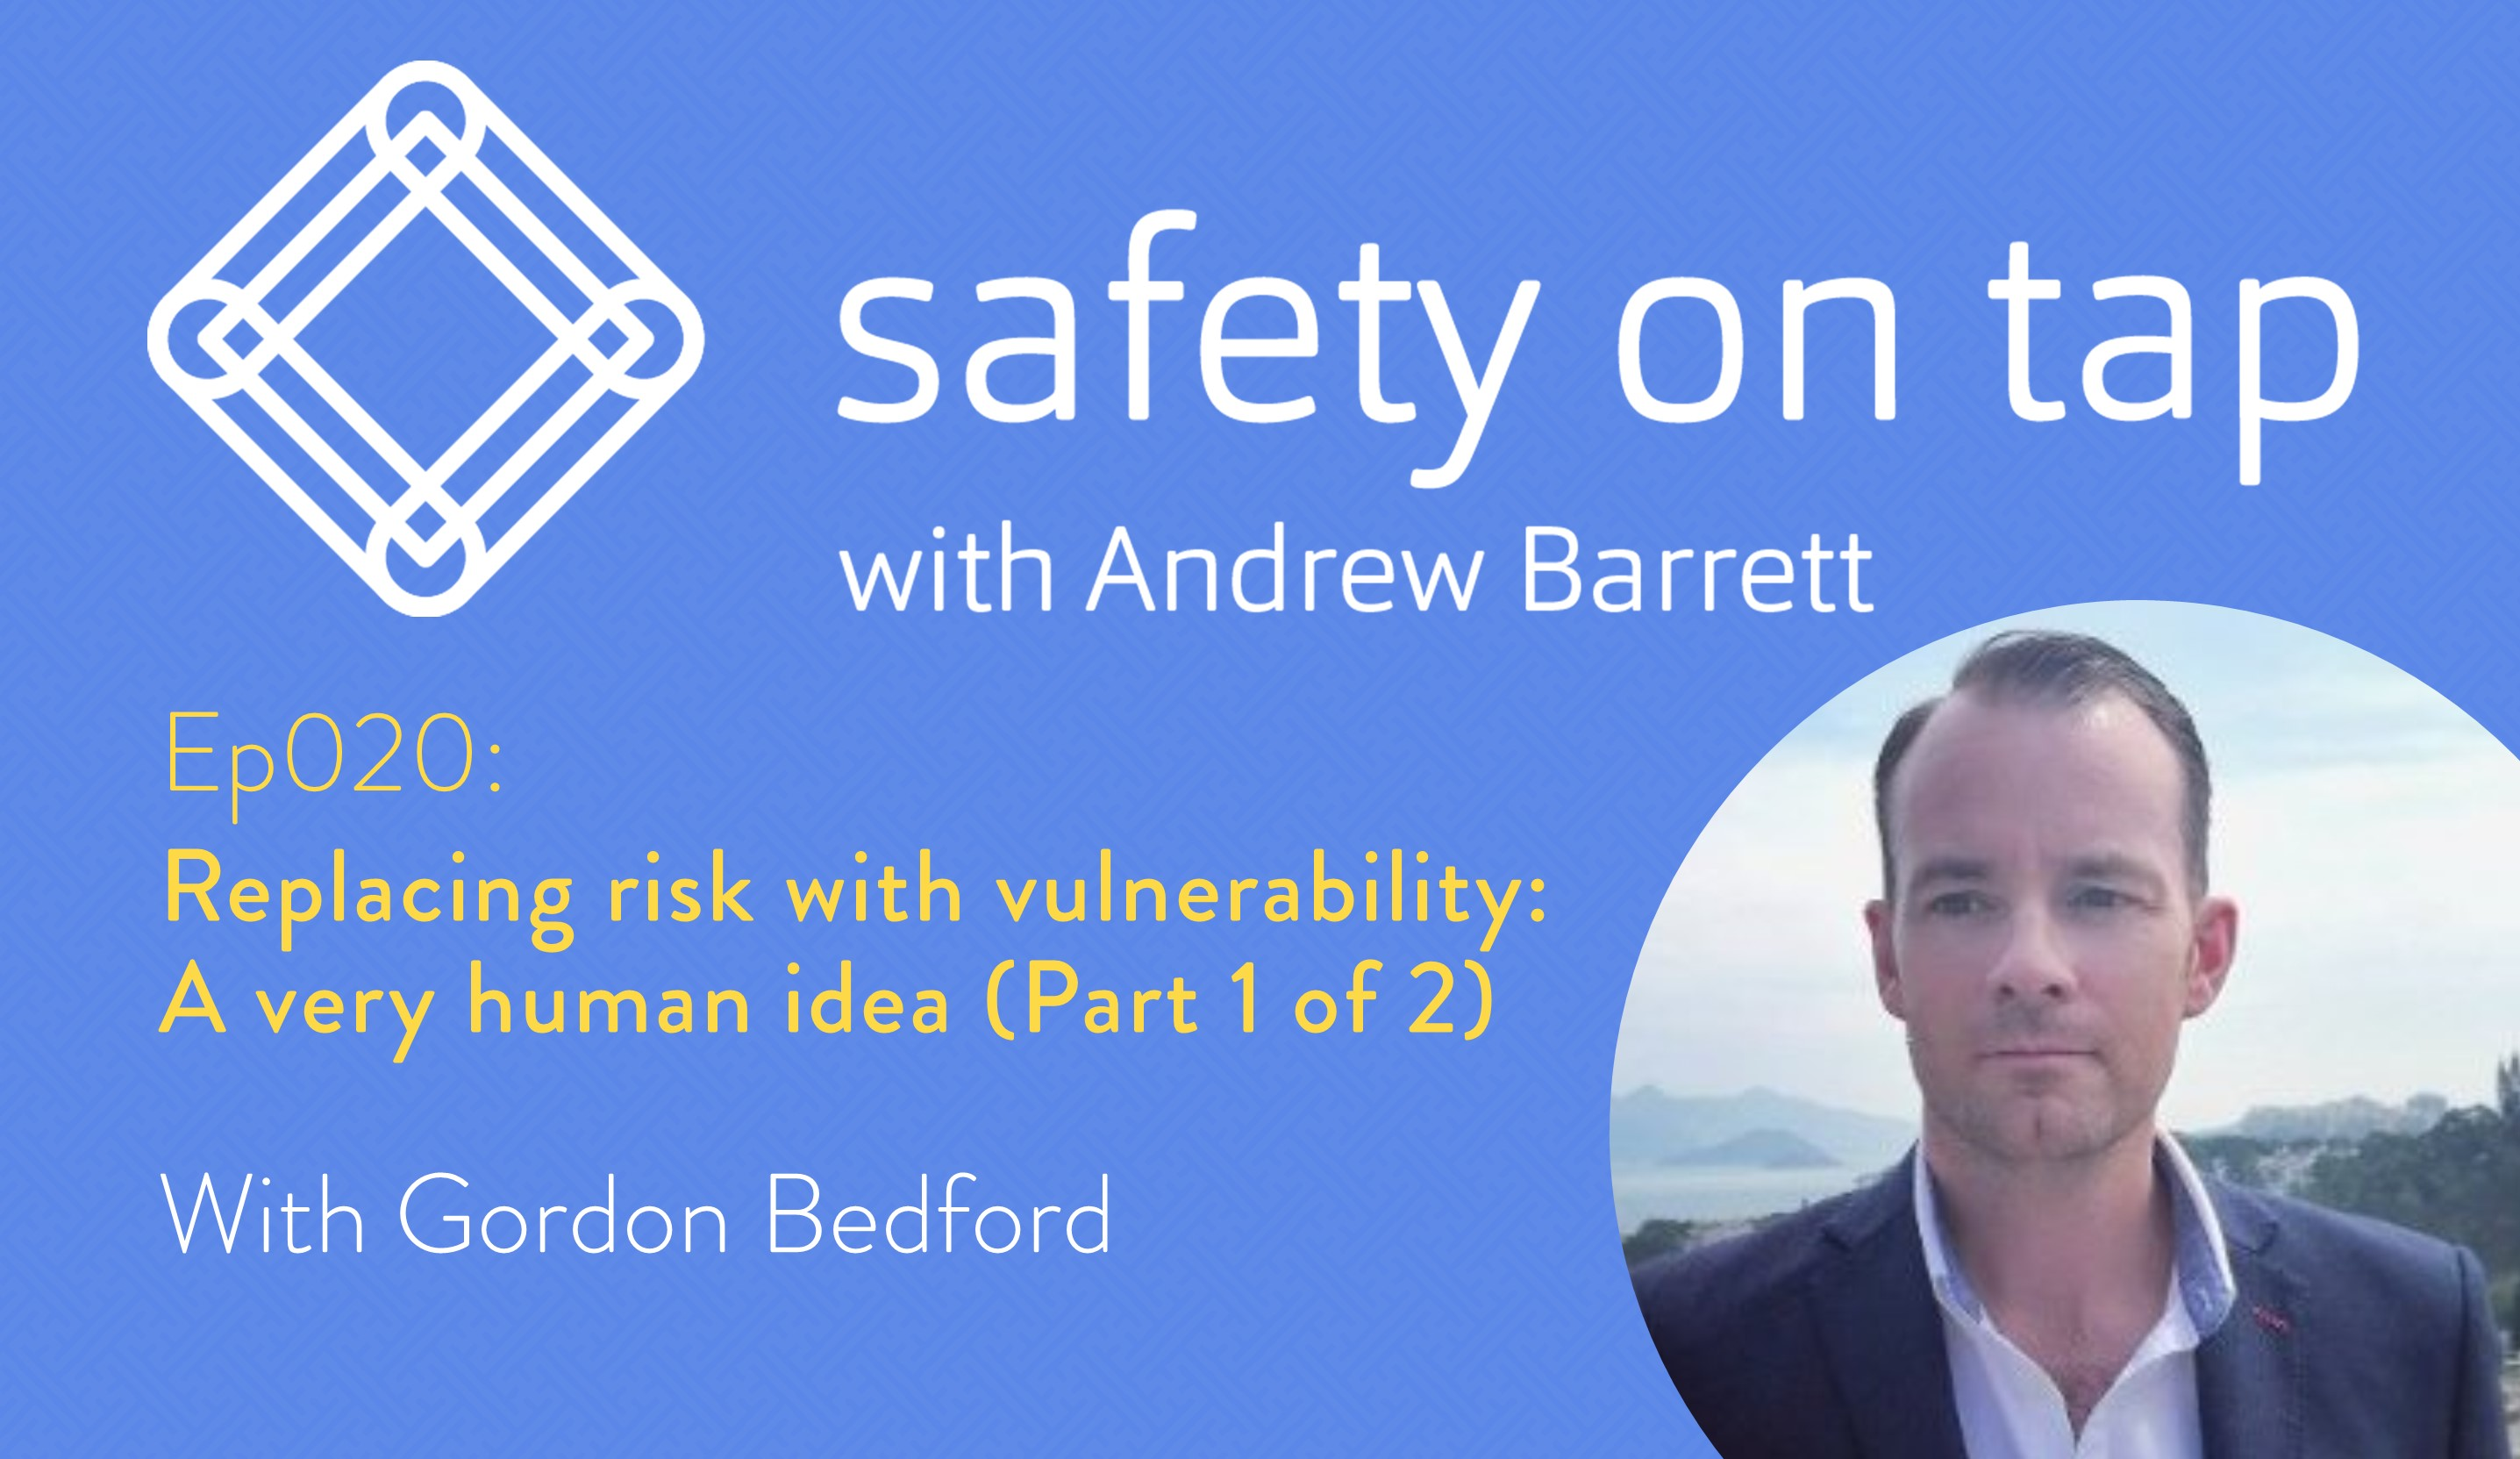 Ep020: Replacing risk with vulnerability: A very human idea, with Gordon Bedford (Part 1 of 2)